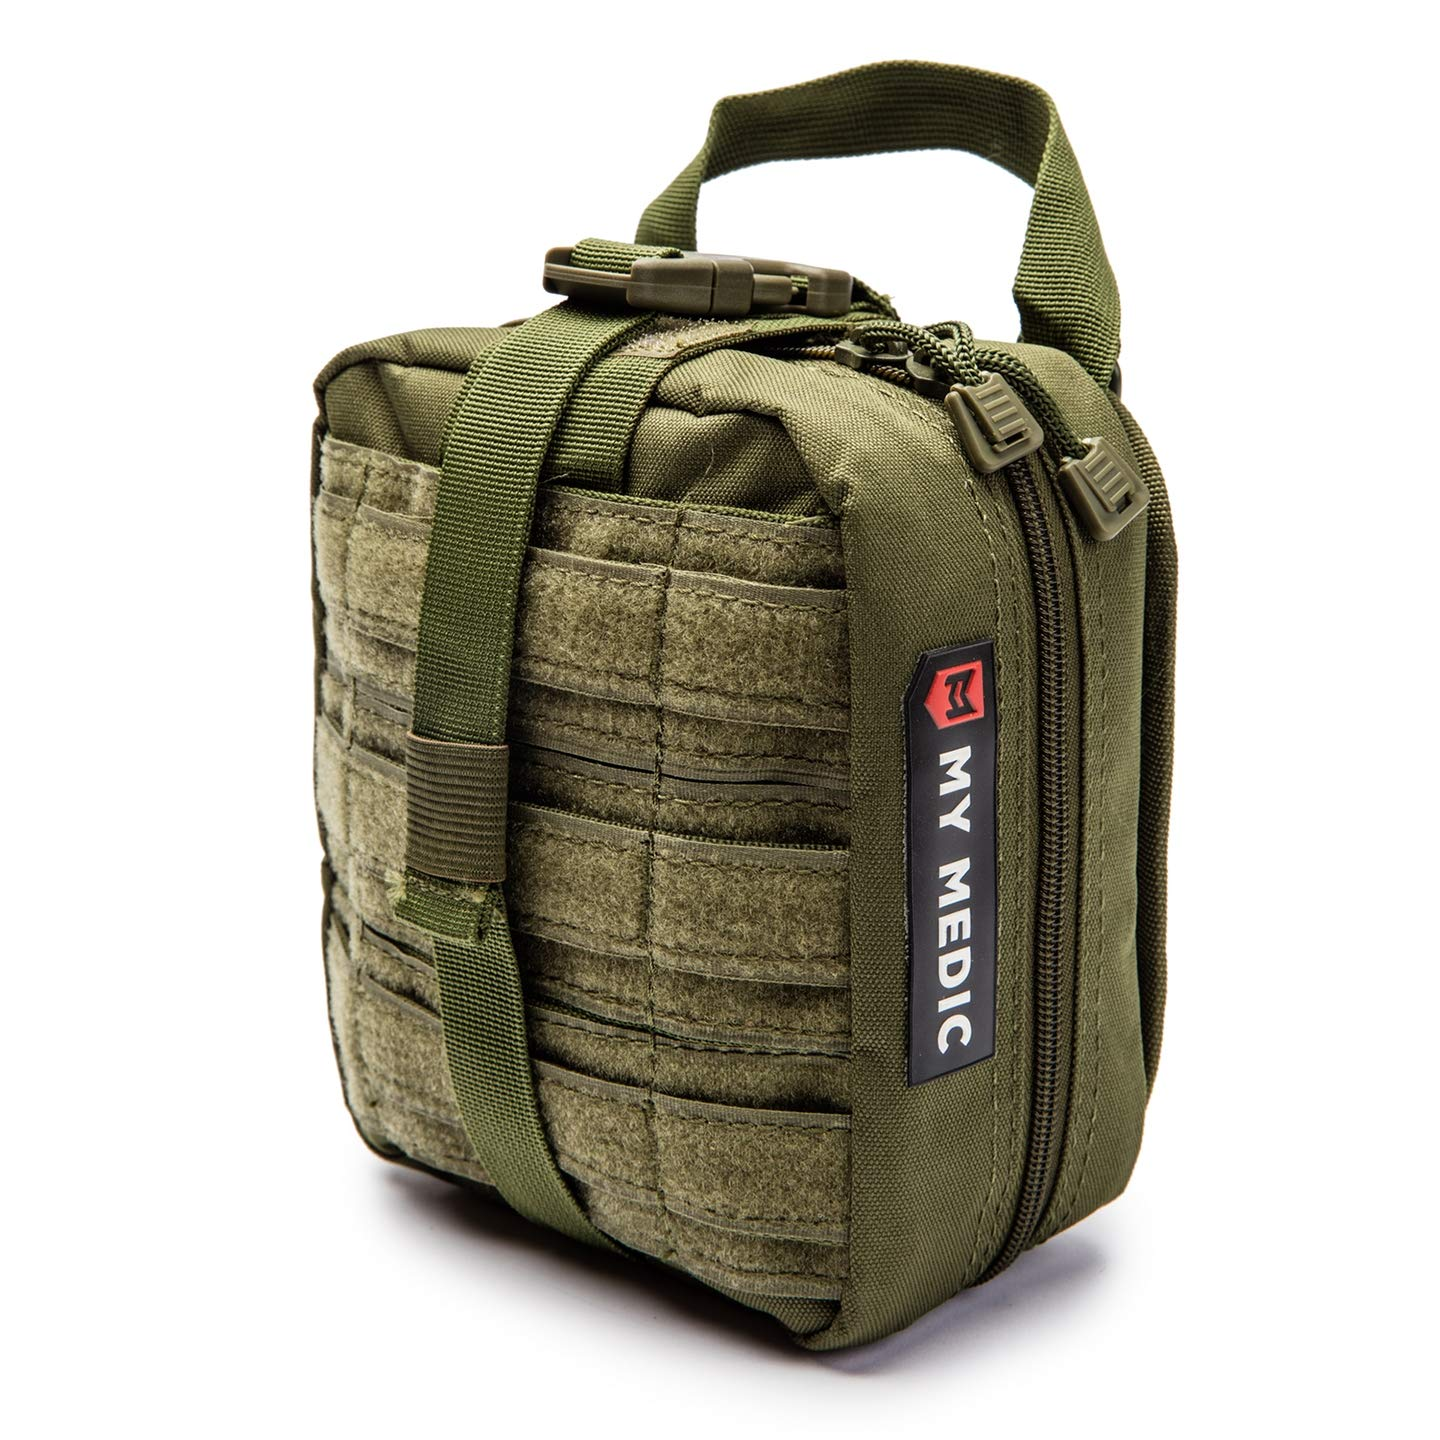 My Medic MyFak Backpack First Aid Kit (Green, Basic)